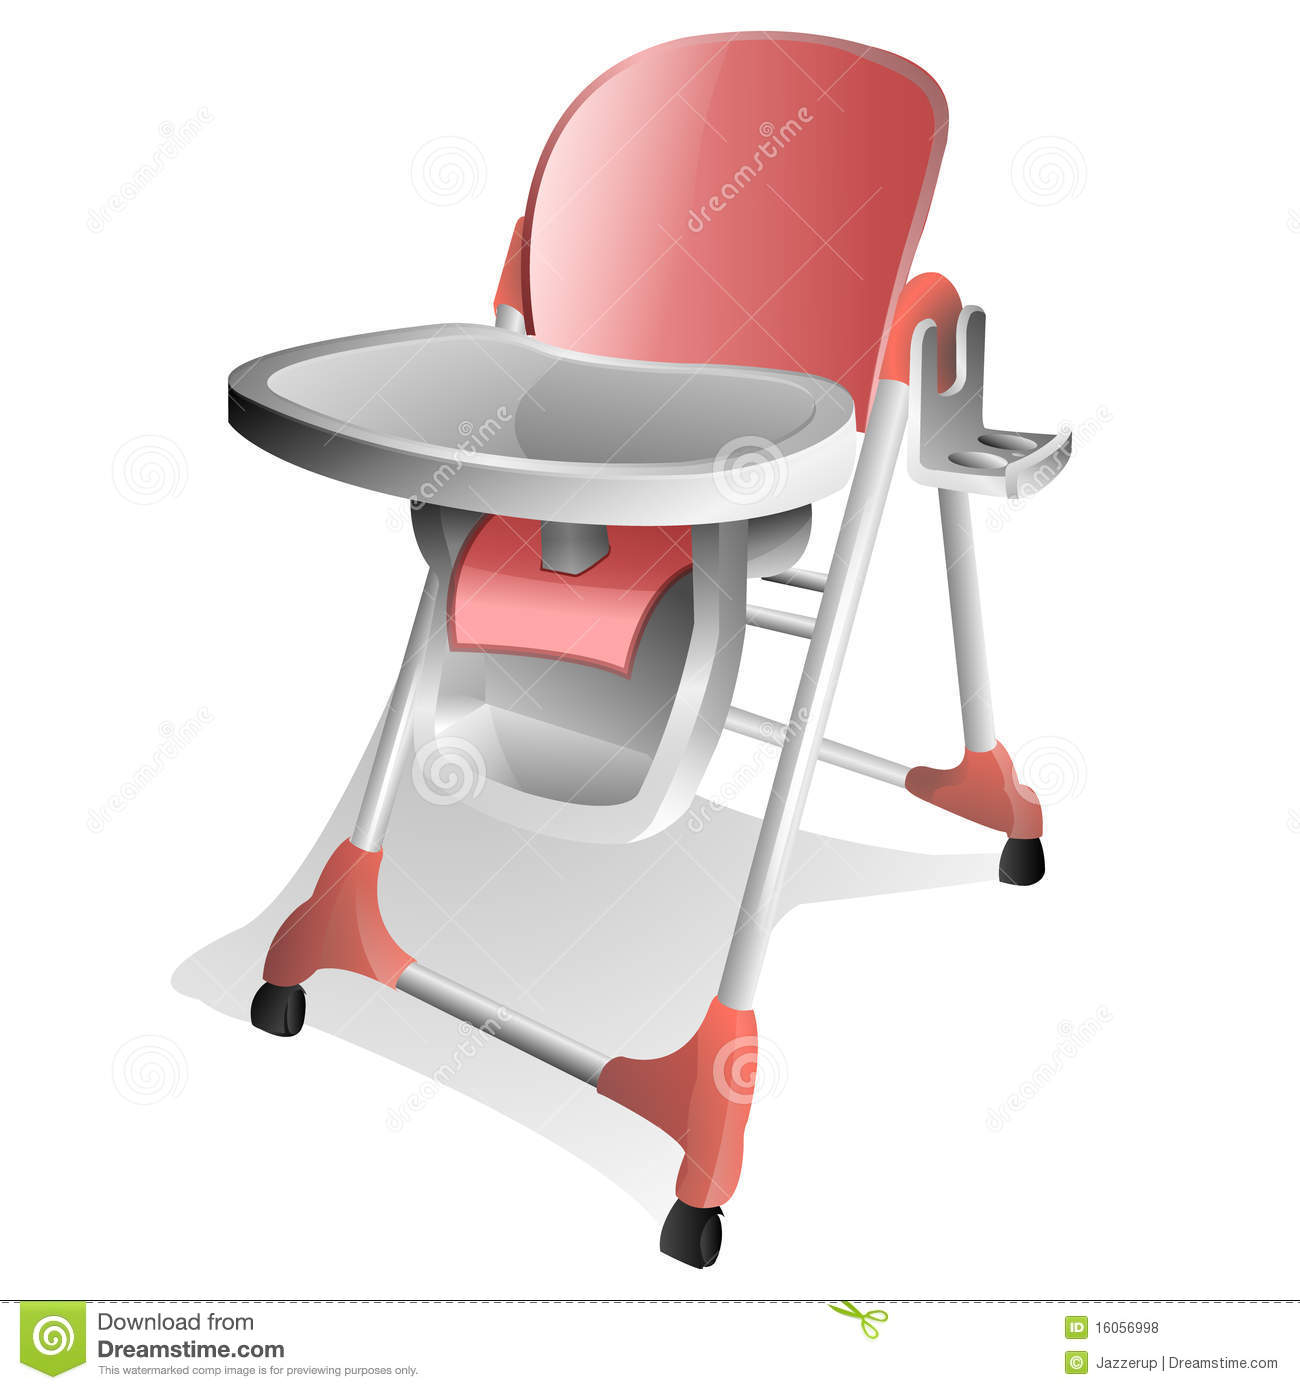 baby high chair royalty free stock photos image 16056998 Graphic Cartoon School Lunch Trays Art Lunch Tray